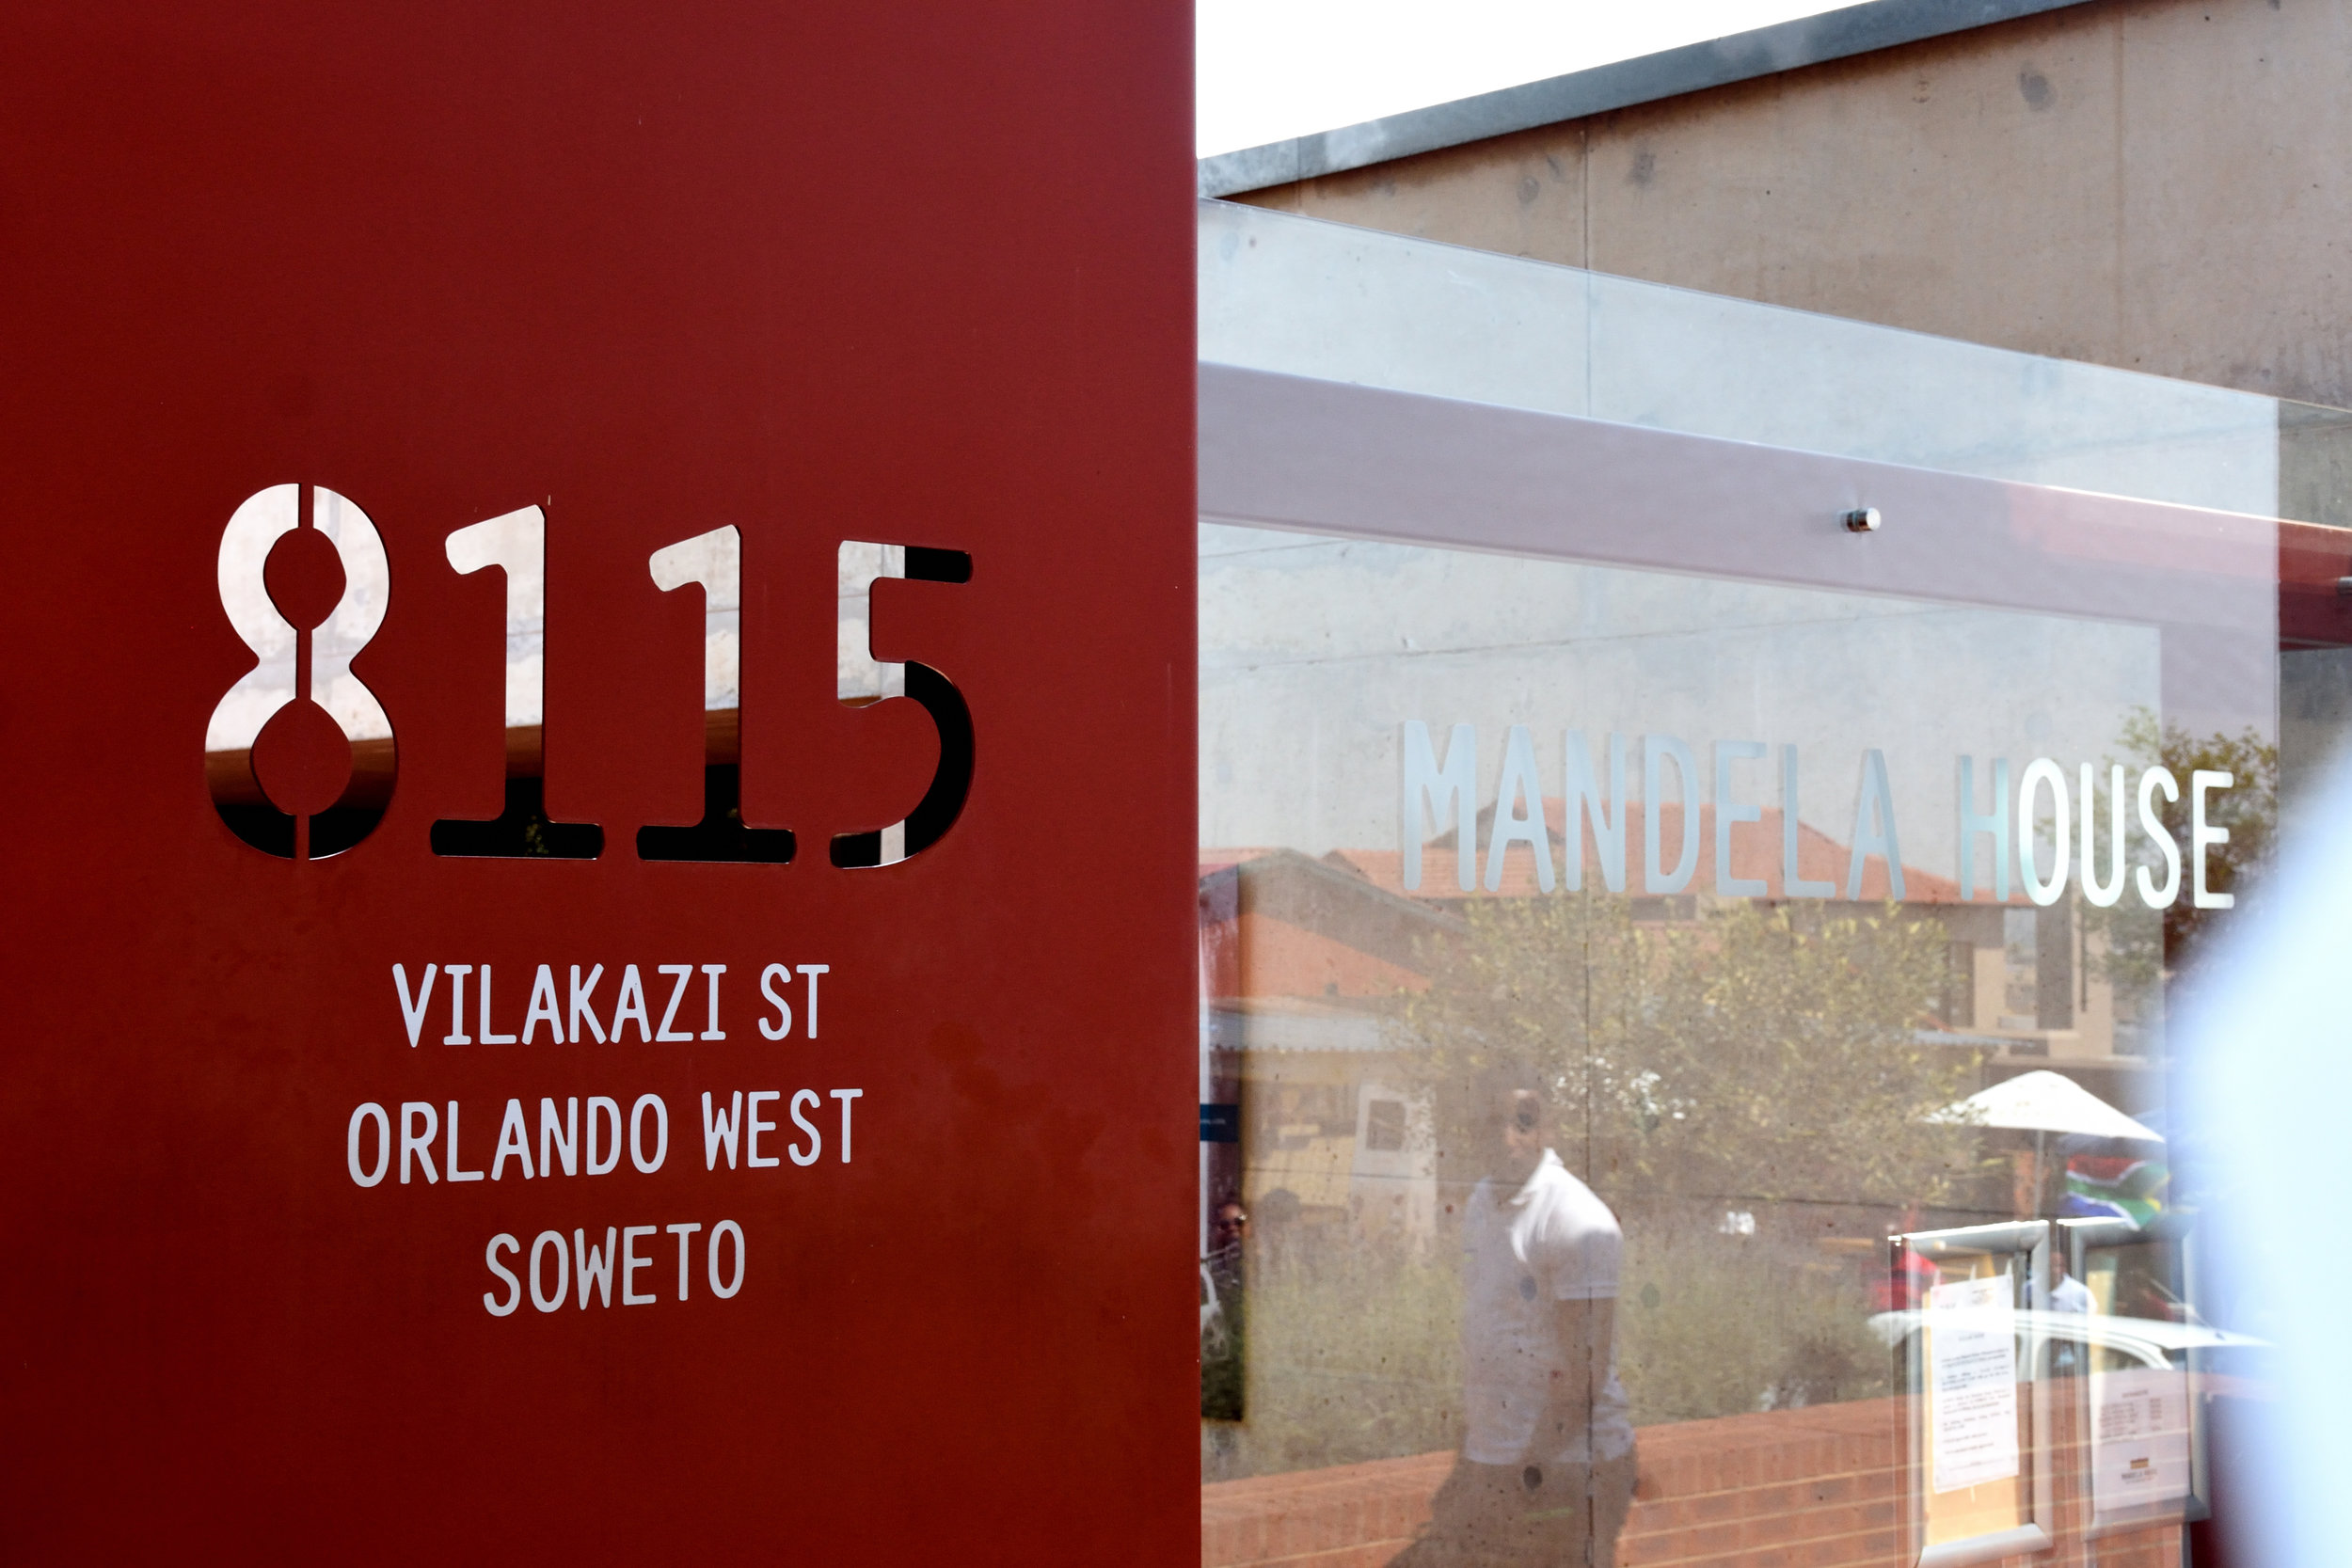 Mandela House, 8115 Orlando West Soweto, South Africa, September 2017